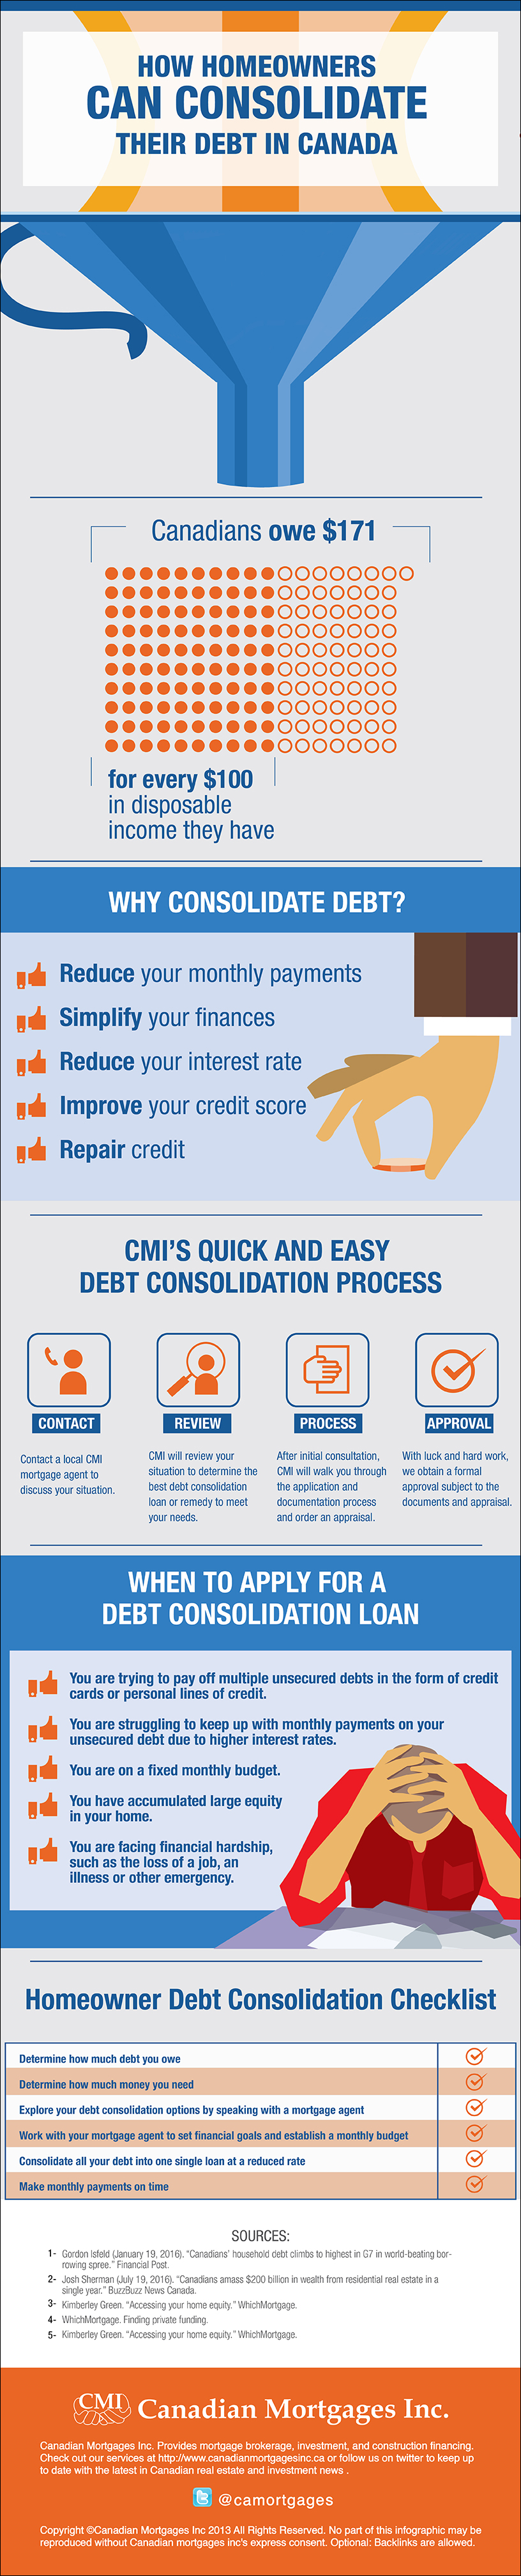 Debt Consolidation and Refinancing Options for Canadian Homeowners